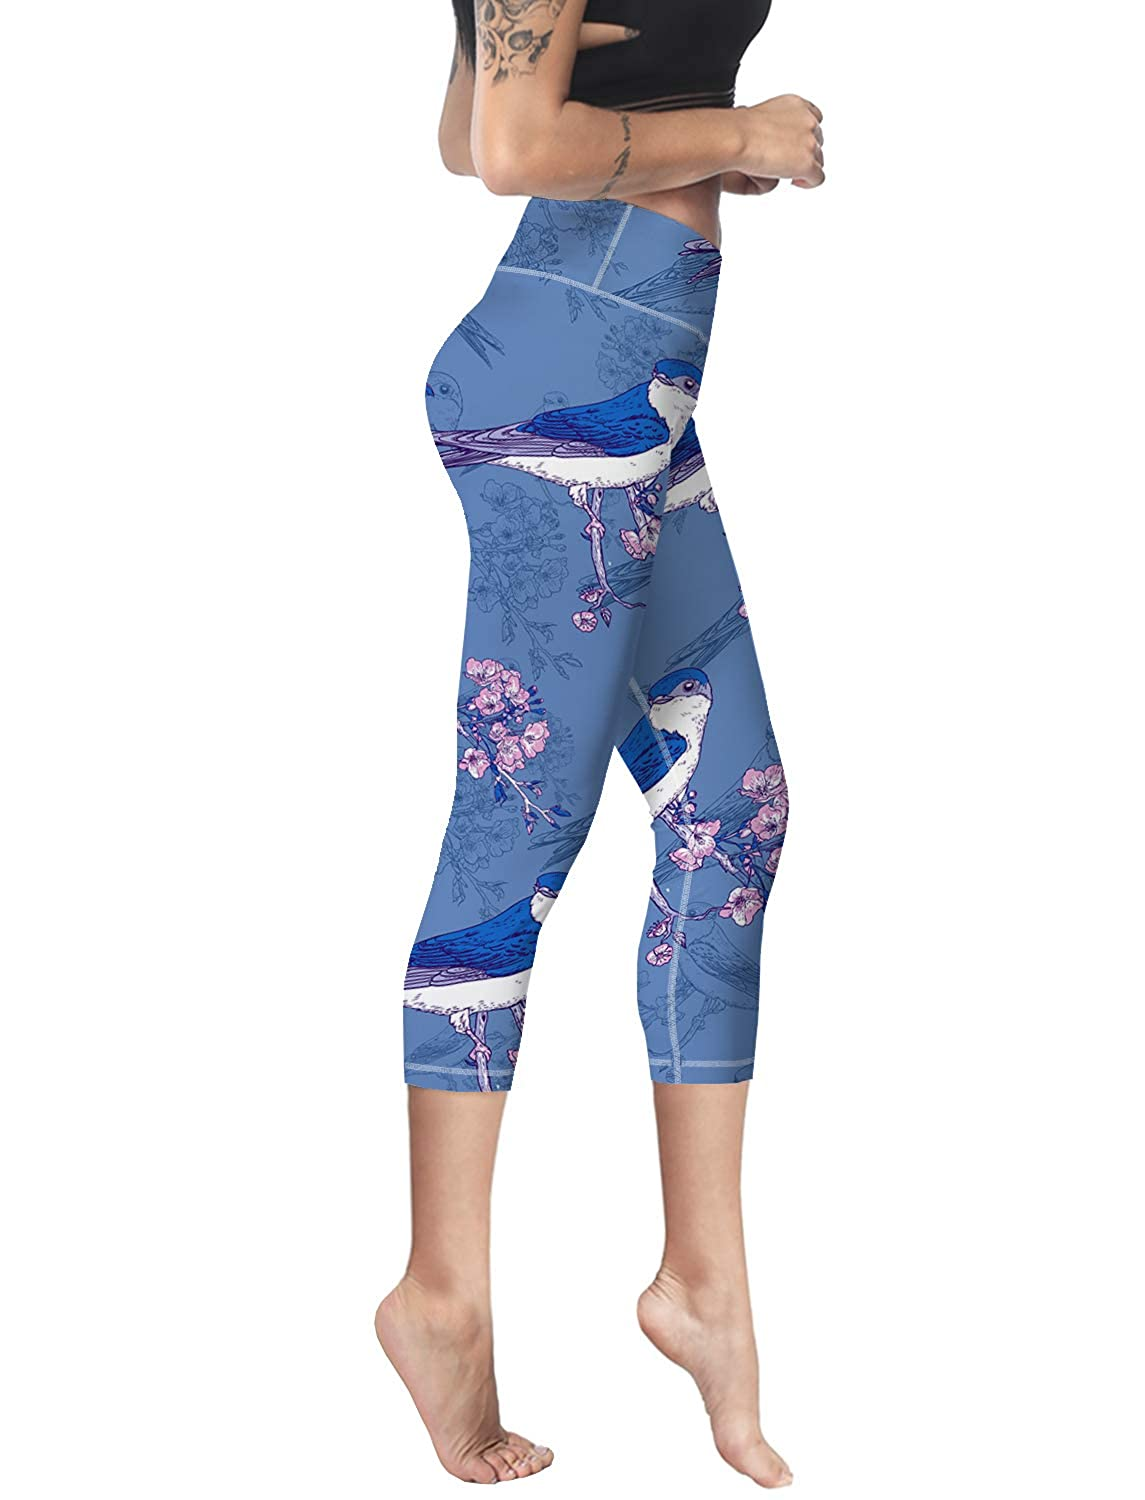 ca065dd1529b7 Capri Tights Running Workout Leggings Cropped Pants Birds on Plum Branches  Women Yoga Pant at Amazon Women's Clothing store: